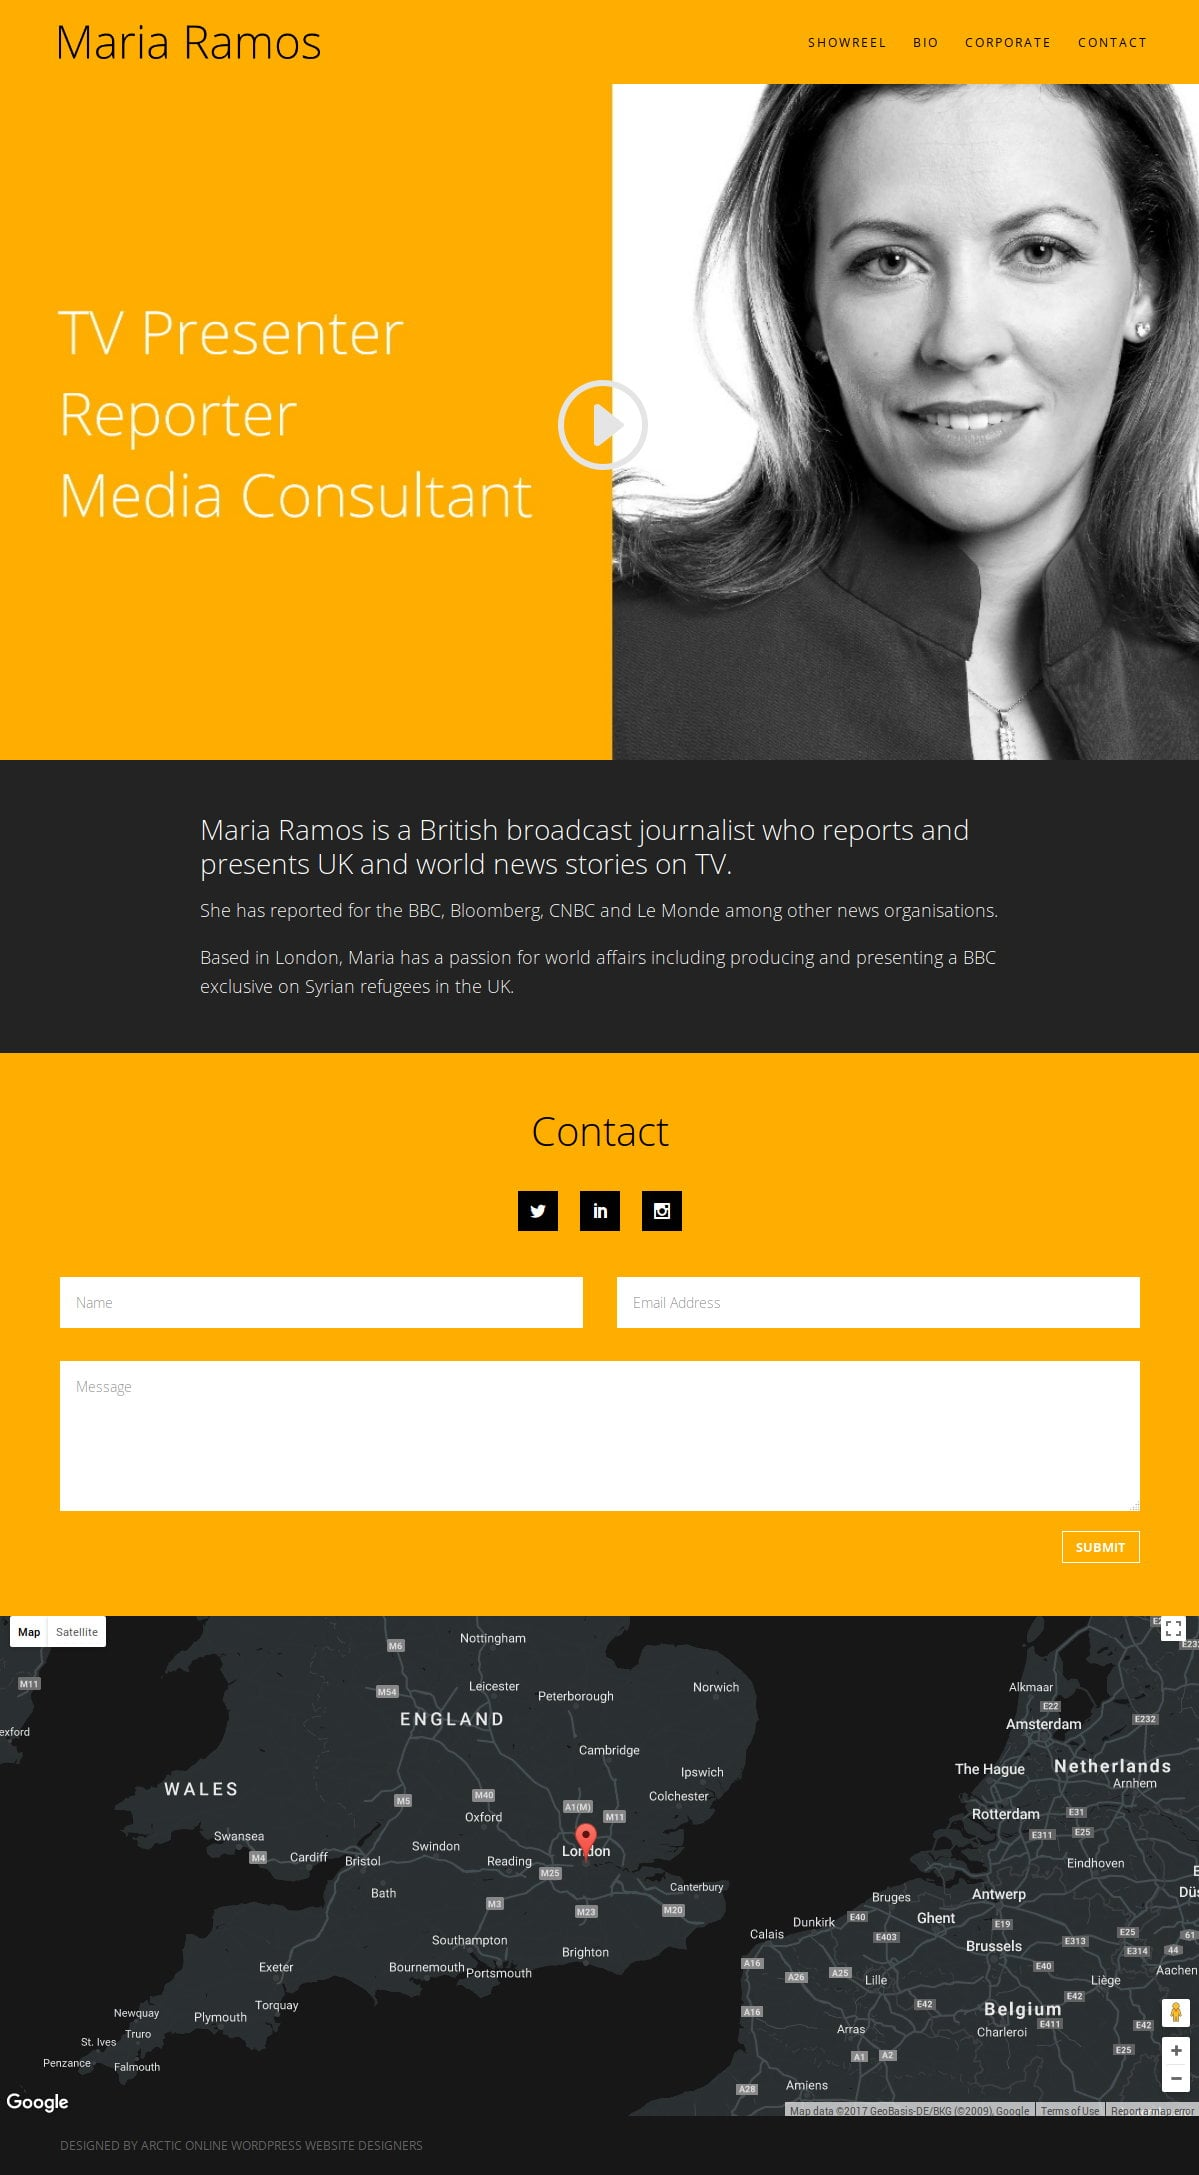 WordPress Website Home Page for Maria Ramos,  Broadcast Journalist (BBC, Bloomberg and CNBC)